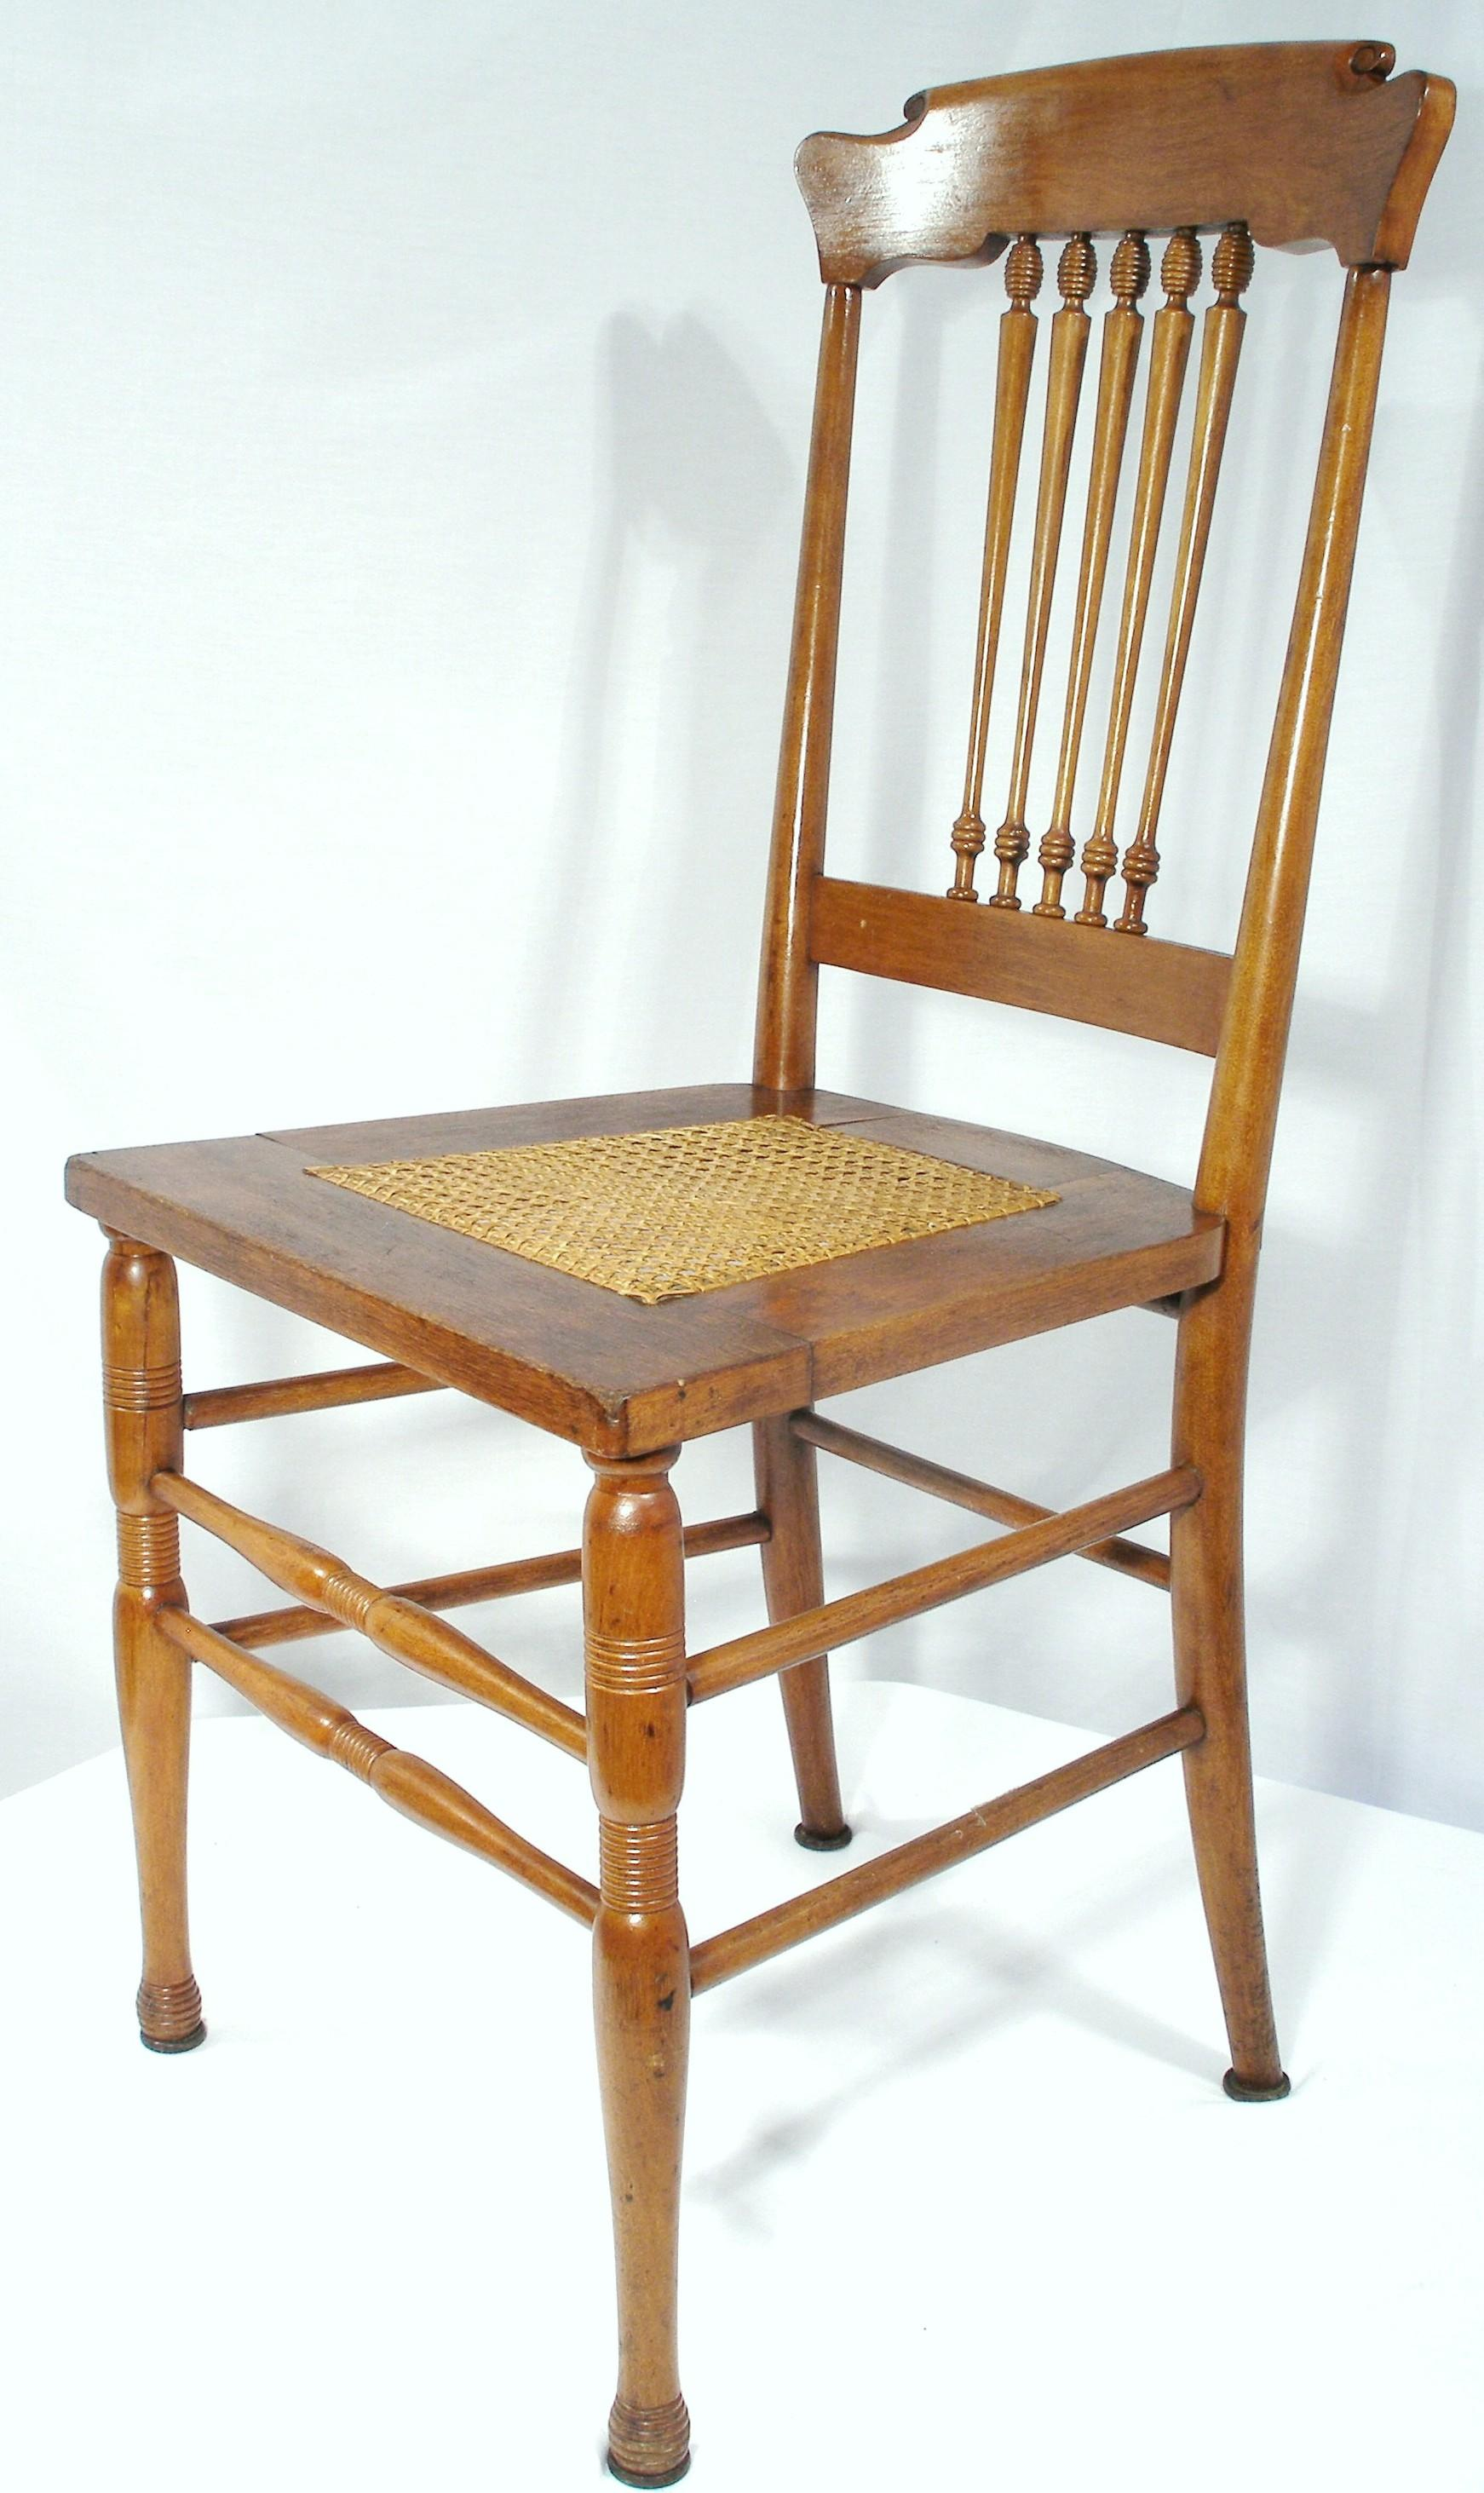 cane bottom chairs office chair design ergonomic antique walnut scandinavian style kitchen